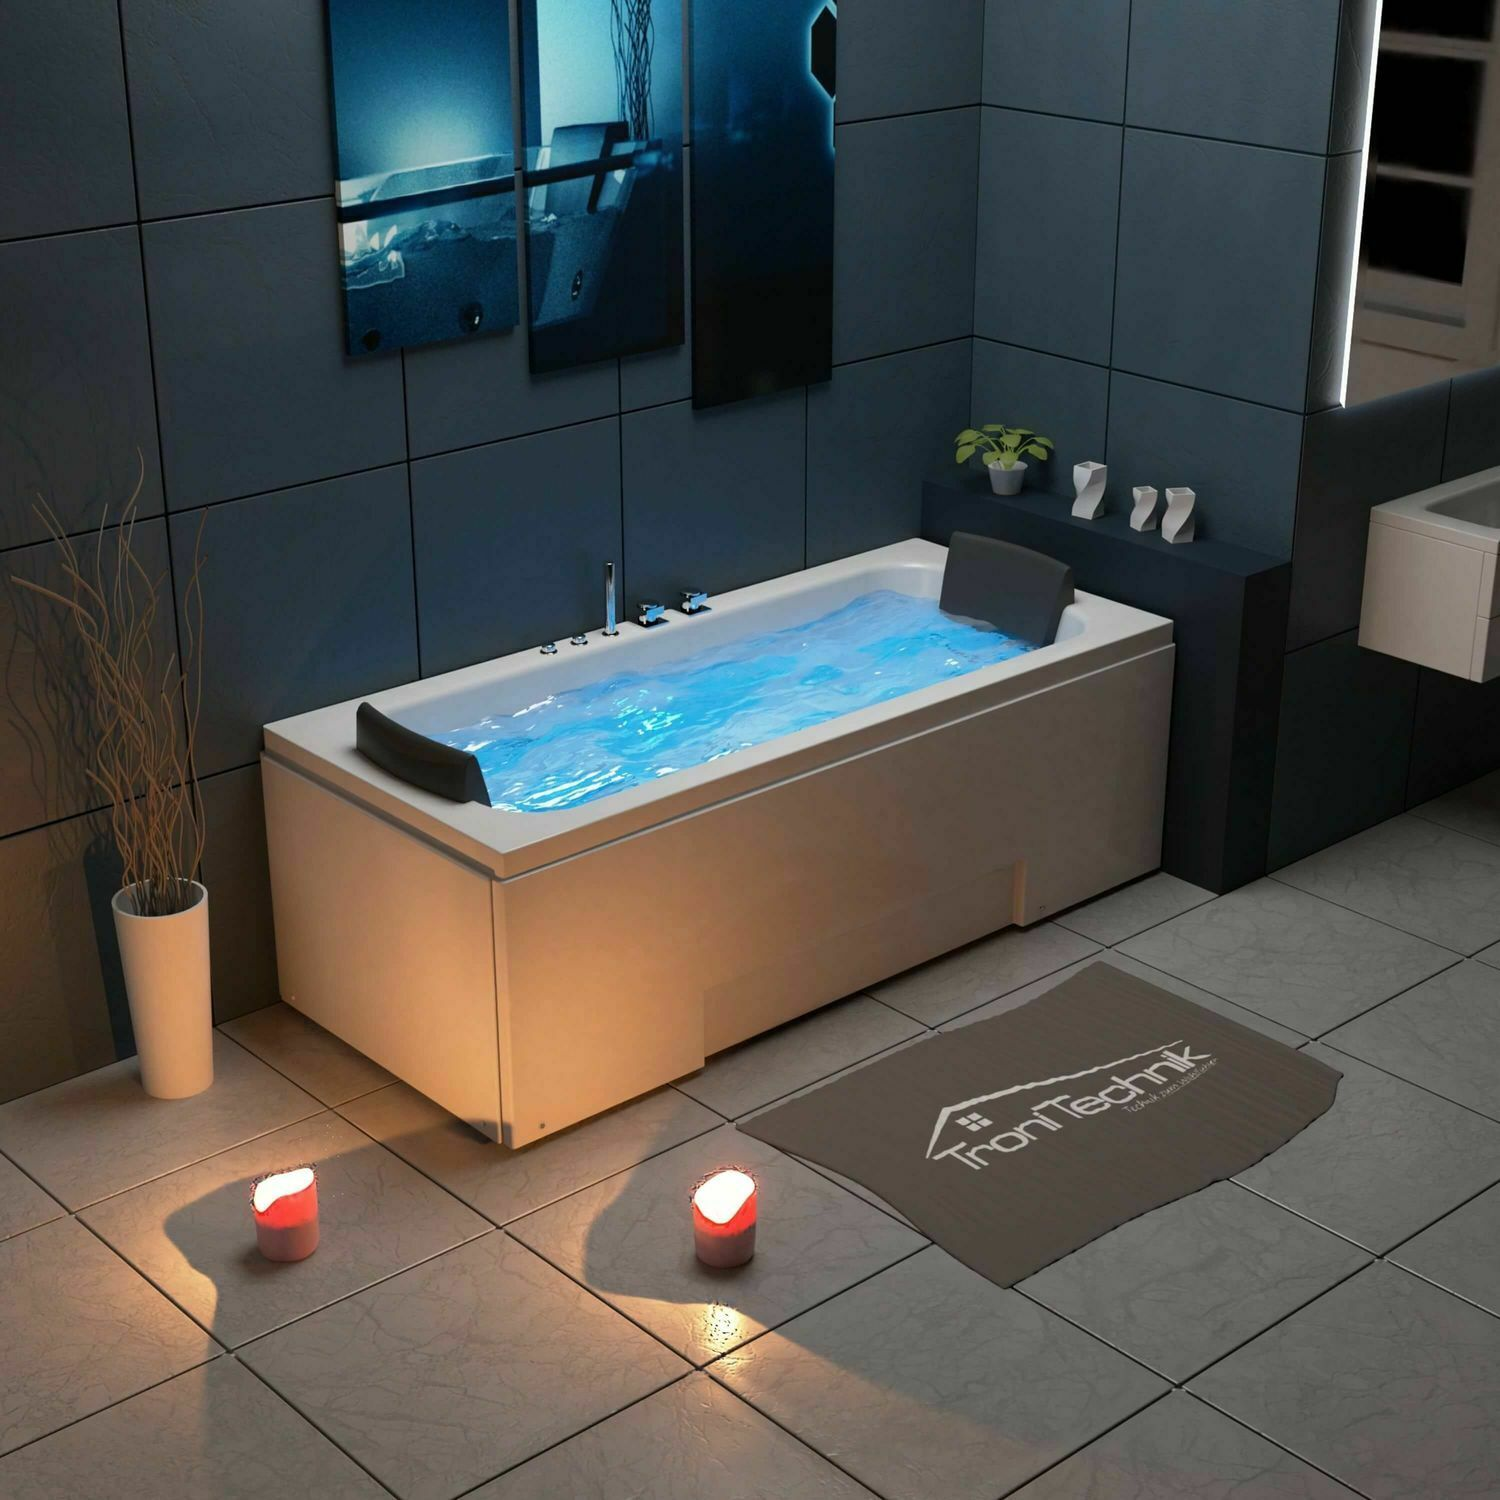 tronitechnik whirlpool badewanne 2 personen wanne eckbadewanne whirlwanne led eur 649 00. Black Bedroom Furniture Sets. Home Design Ideas